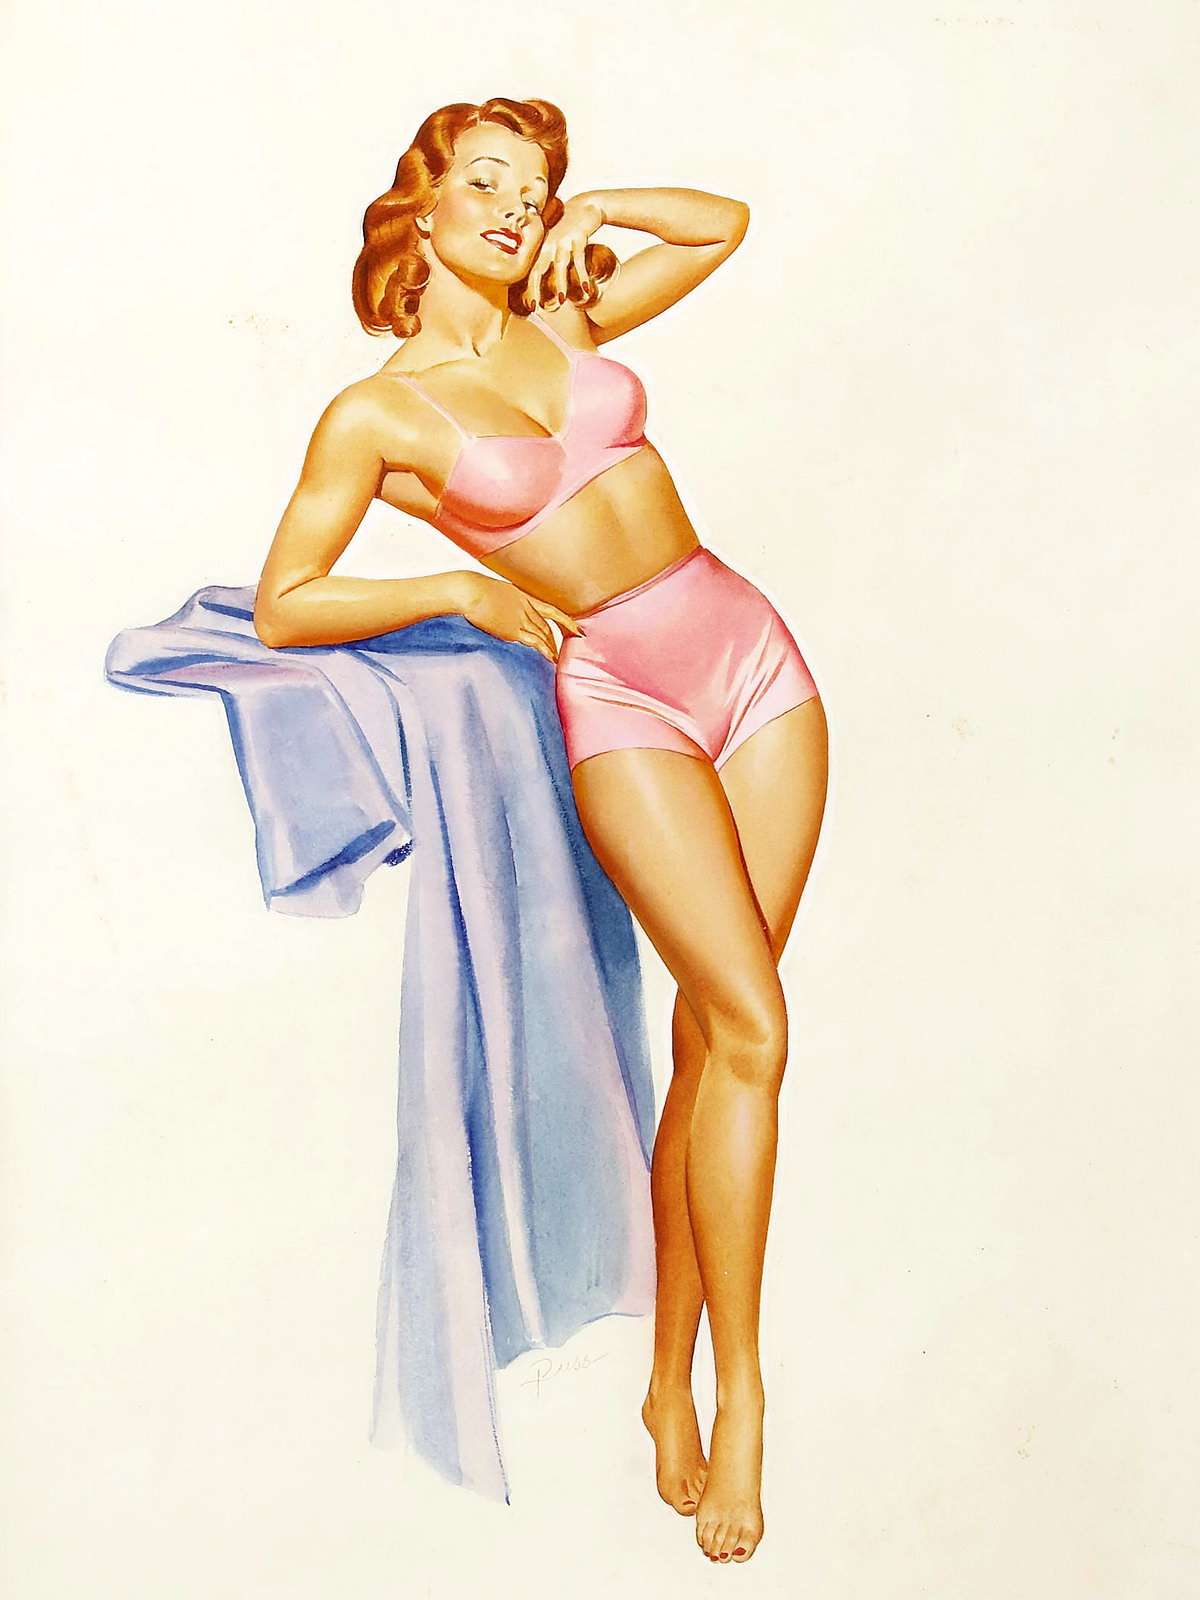 Pin Up and Cartoon Girls Art Vintage and Modern